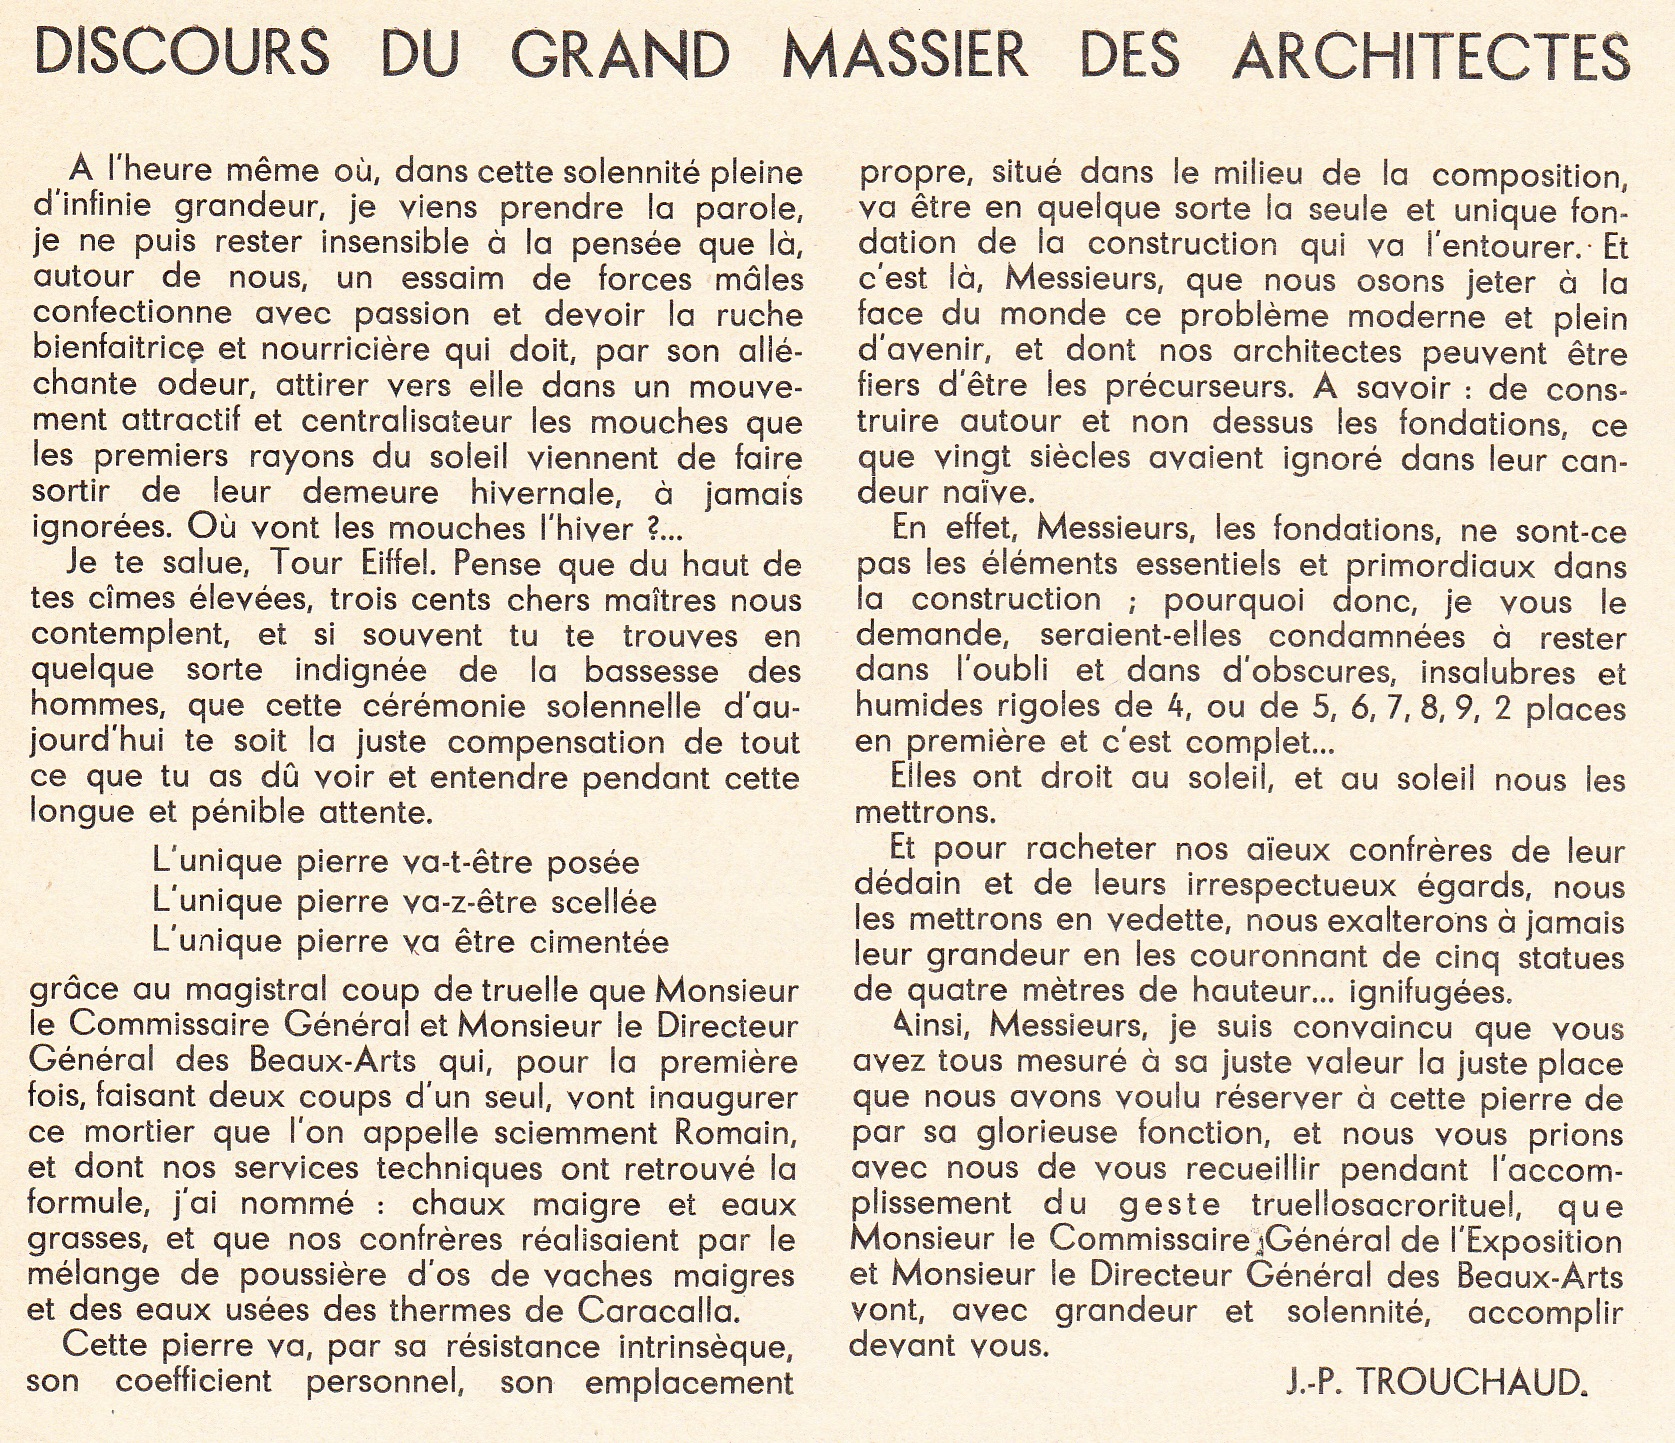 BULLETIN_193705_Discours-Grand-Massier-Architecte-JP-TROUCHAUD-premiere-pierre.jpg